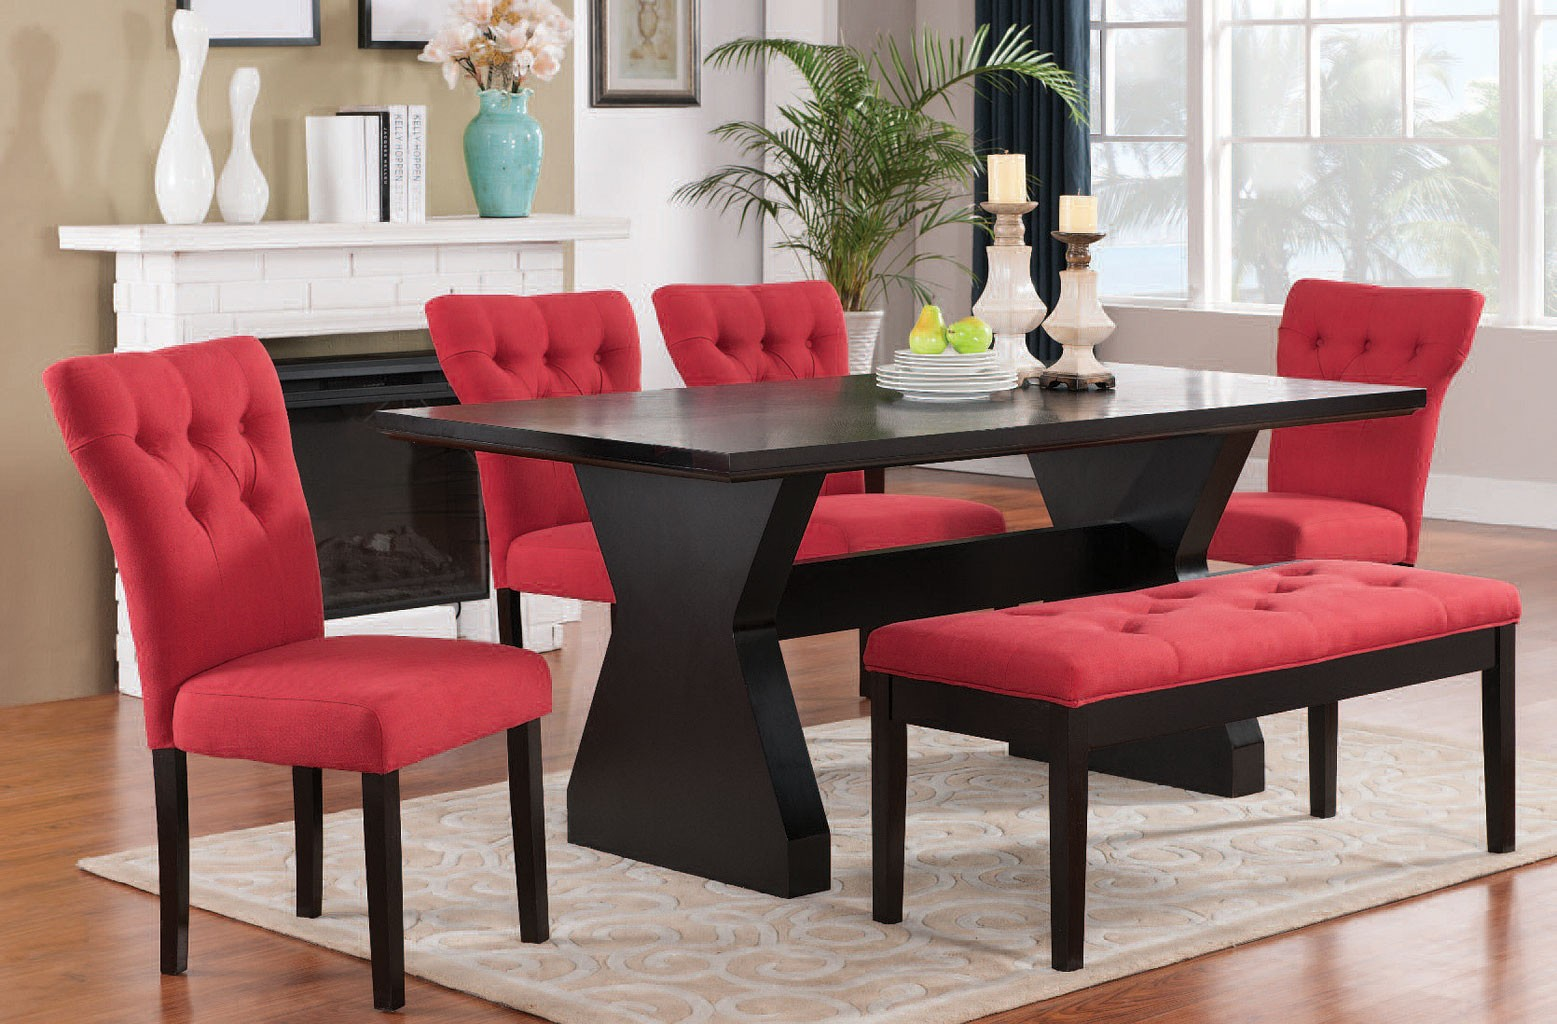 Effie Dining Room Set w Red Chairs  1StopBedrooms